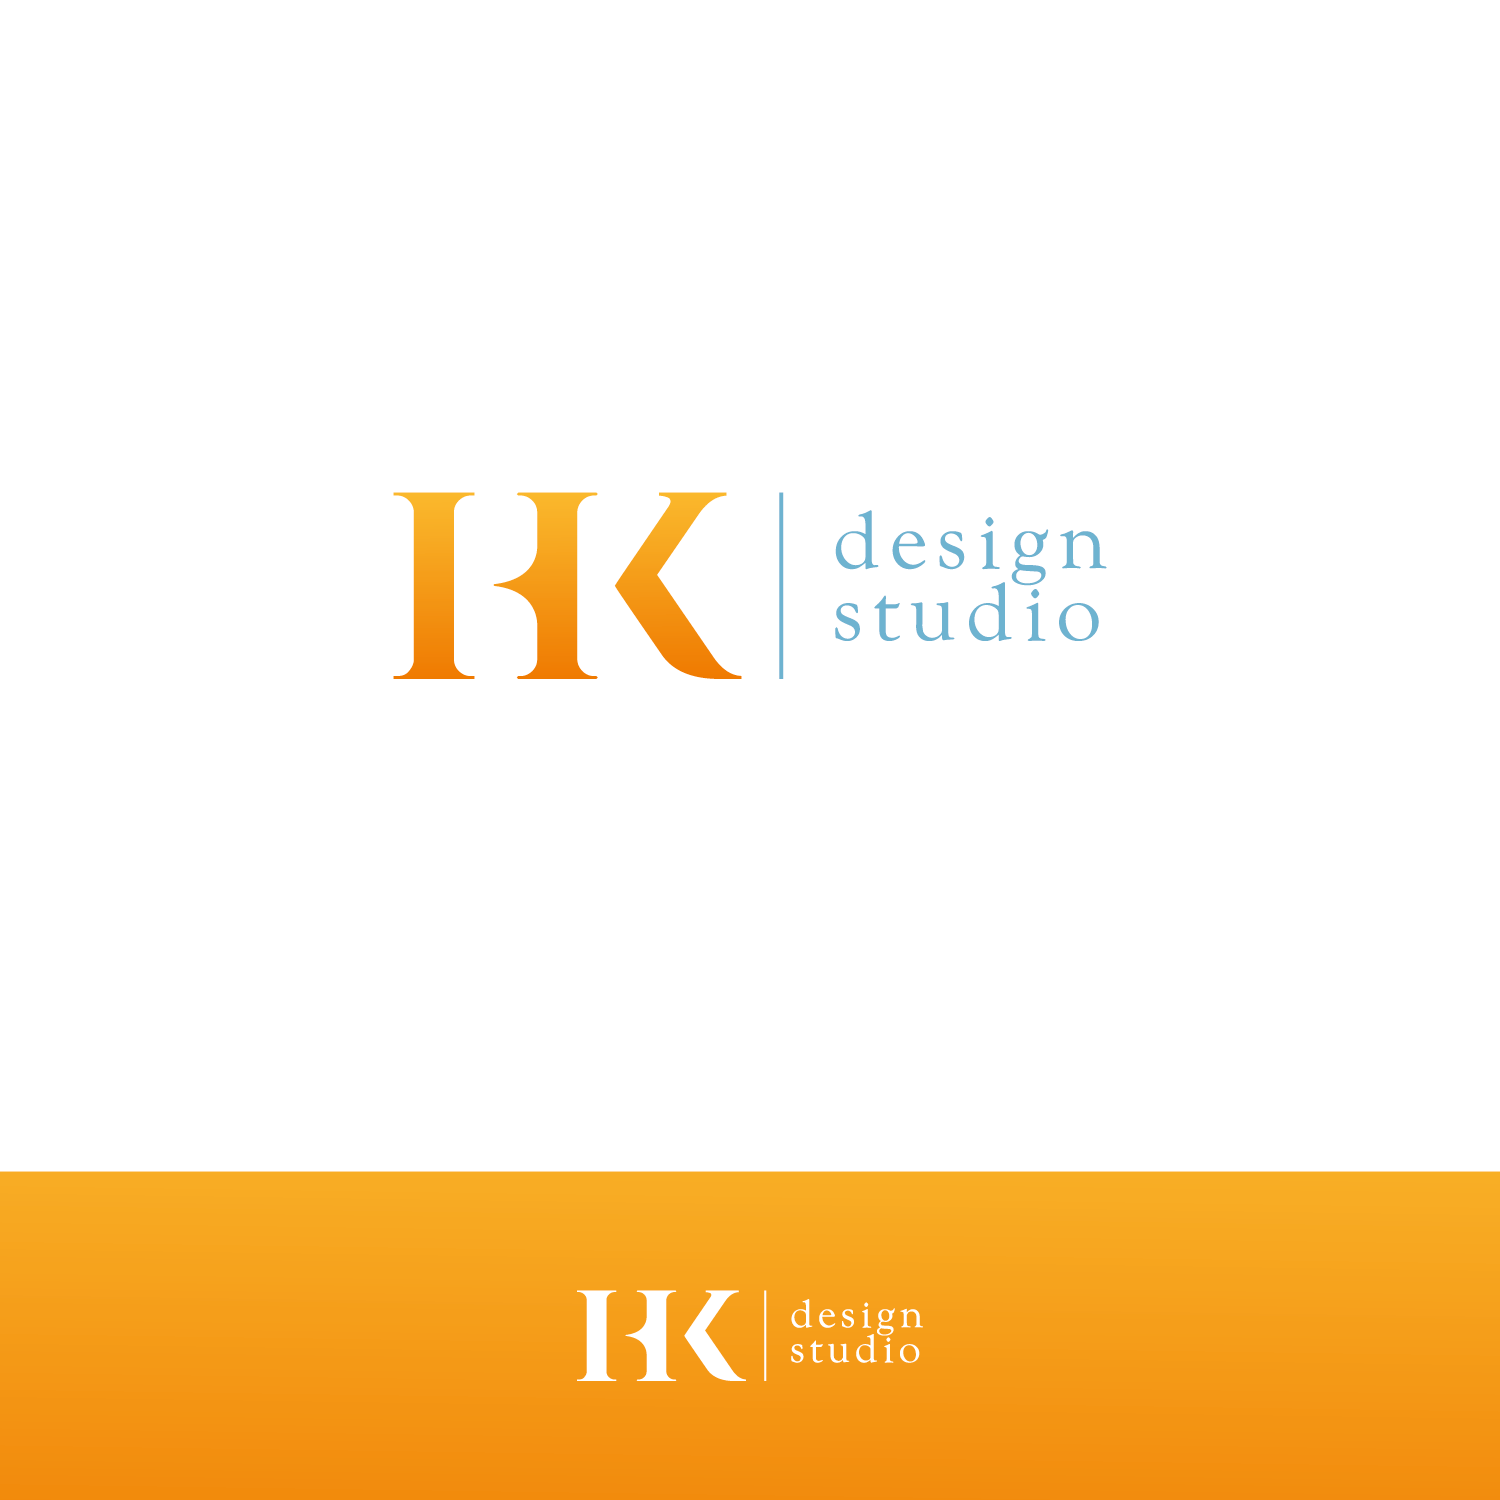 151 modern professional design agency logo designs for hk for Design agency